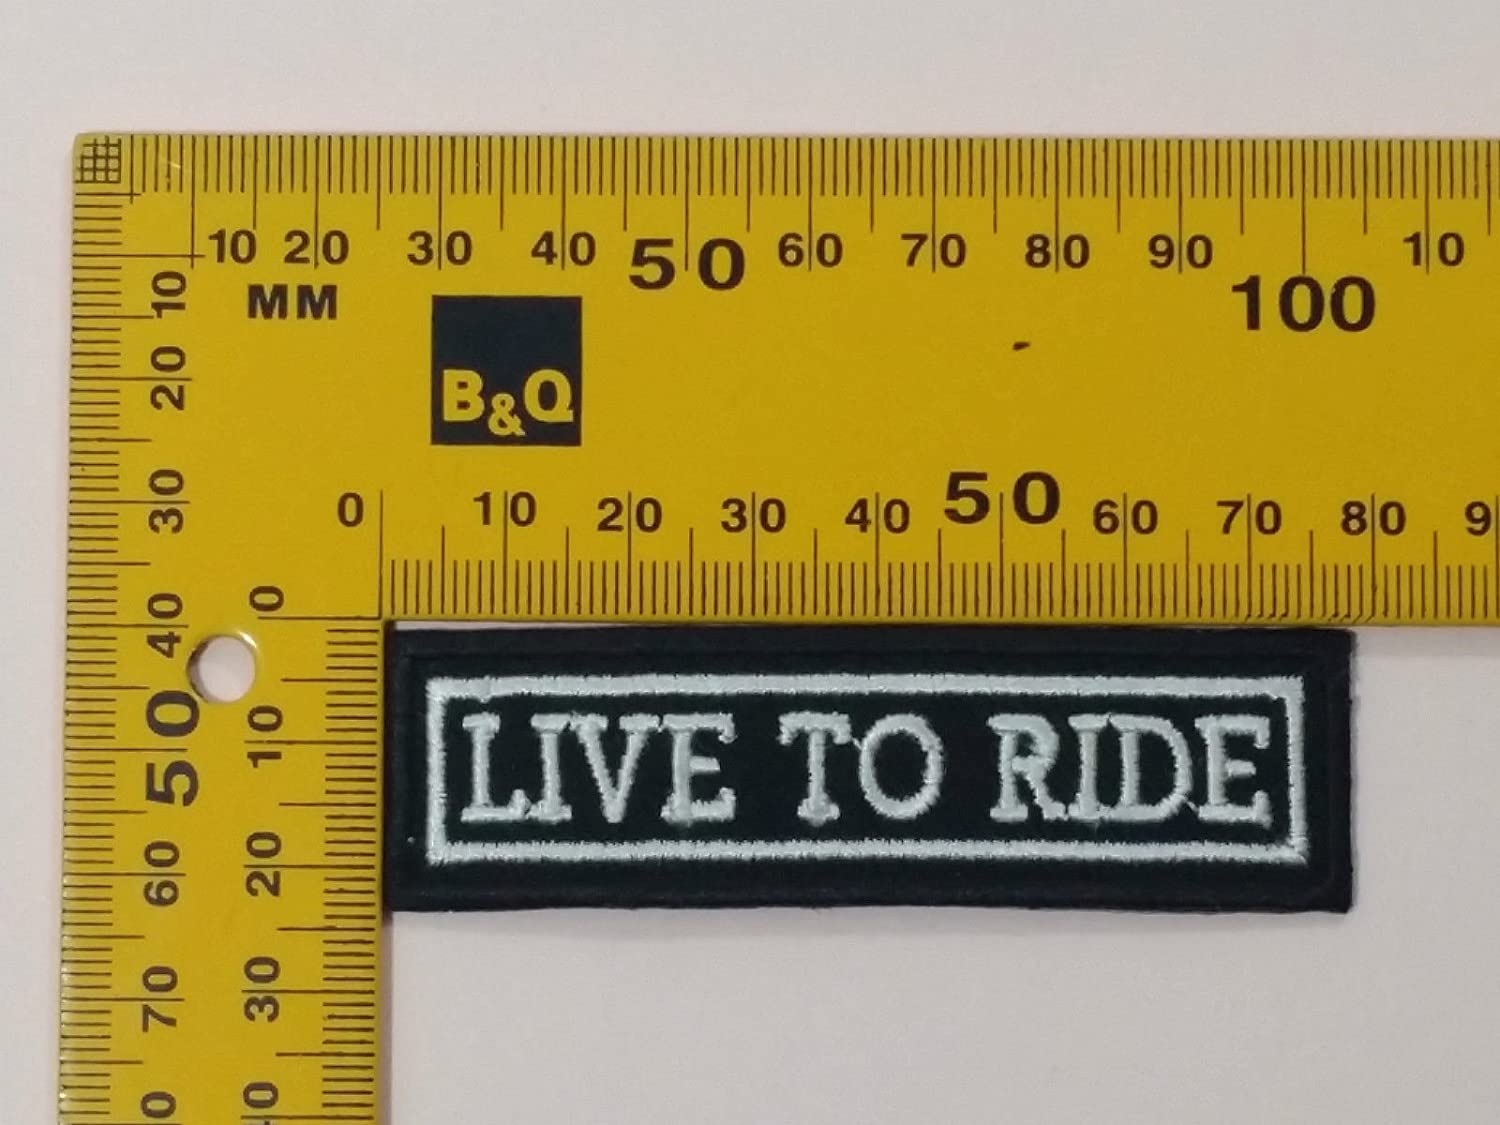 LIVE TO RIDE ROCKER Embroidered Motorcycle MC Club NEW Biker Vest Patch PAT-1149